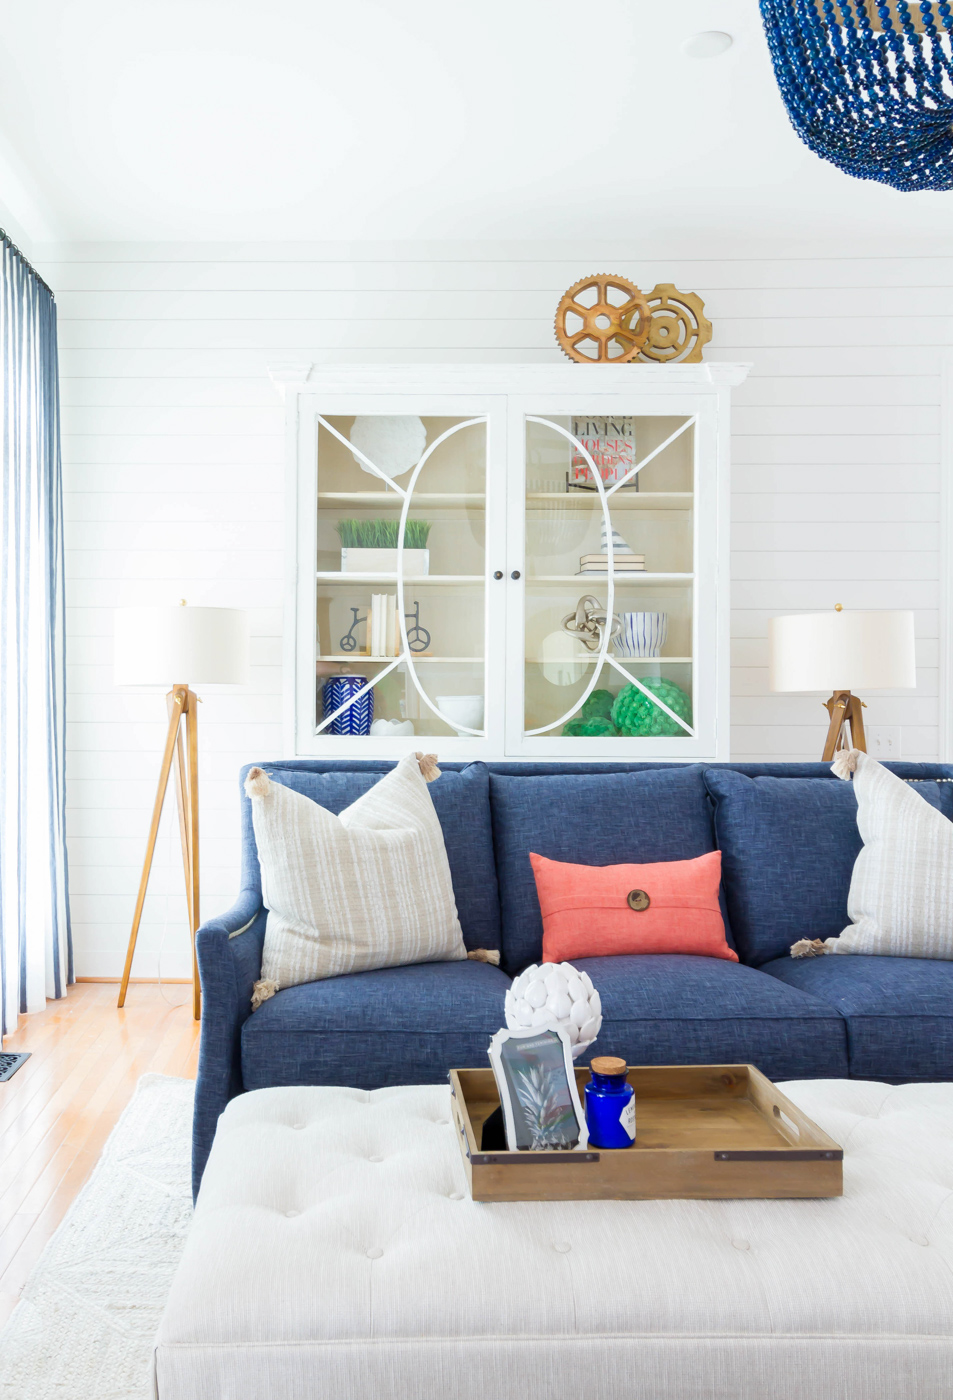 Eclectic Home Tour - love the white shiplap walls as a backdrop for blue sofas and chandelier #shiplap #neutraldecor #coastaldecor